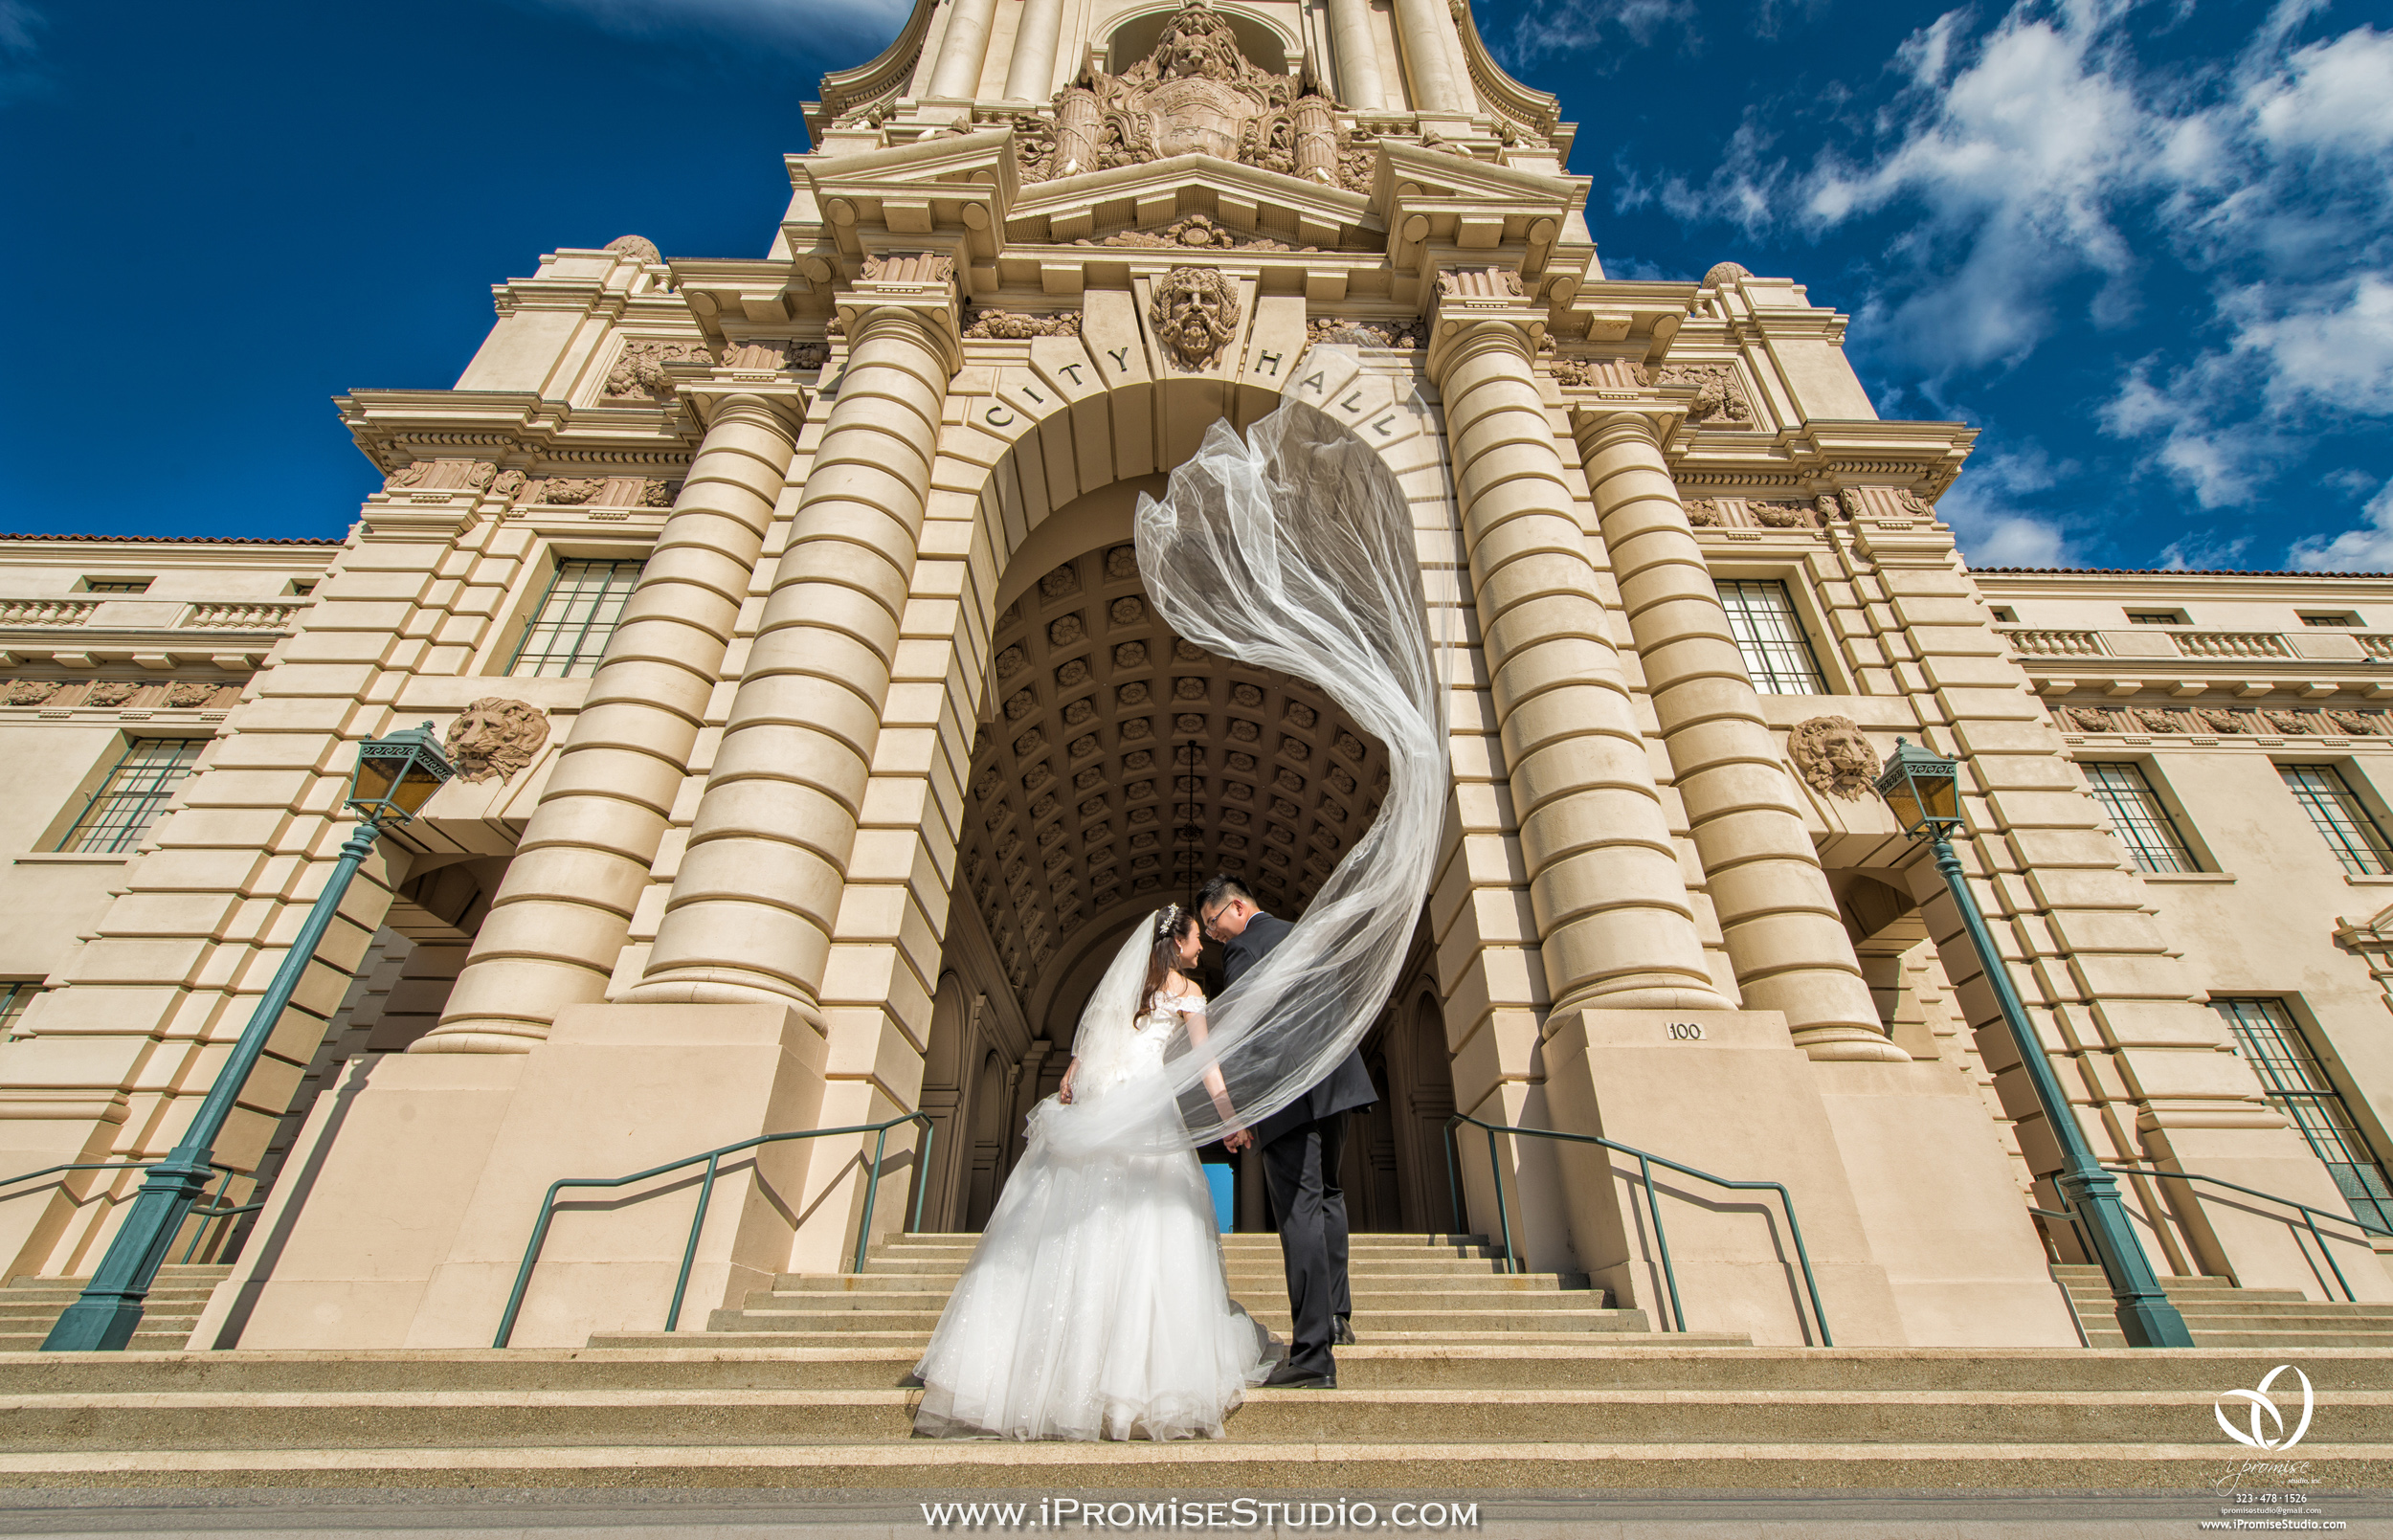 Pasadena Cityhall engagement wedding 15.JPG